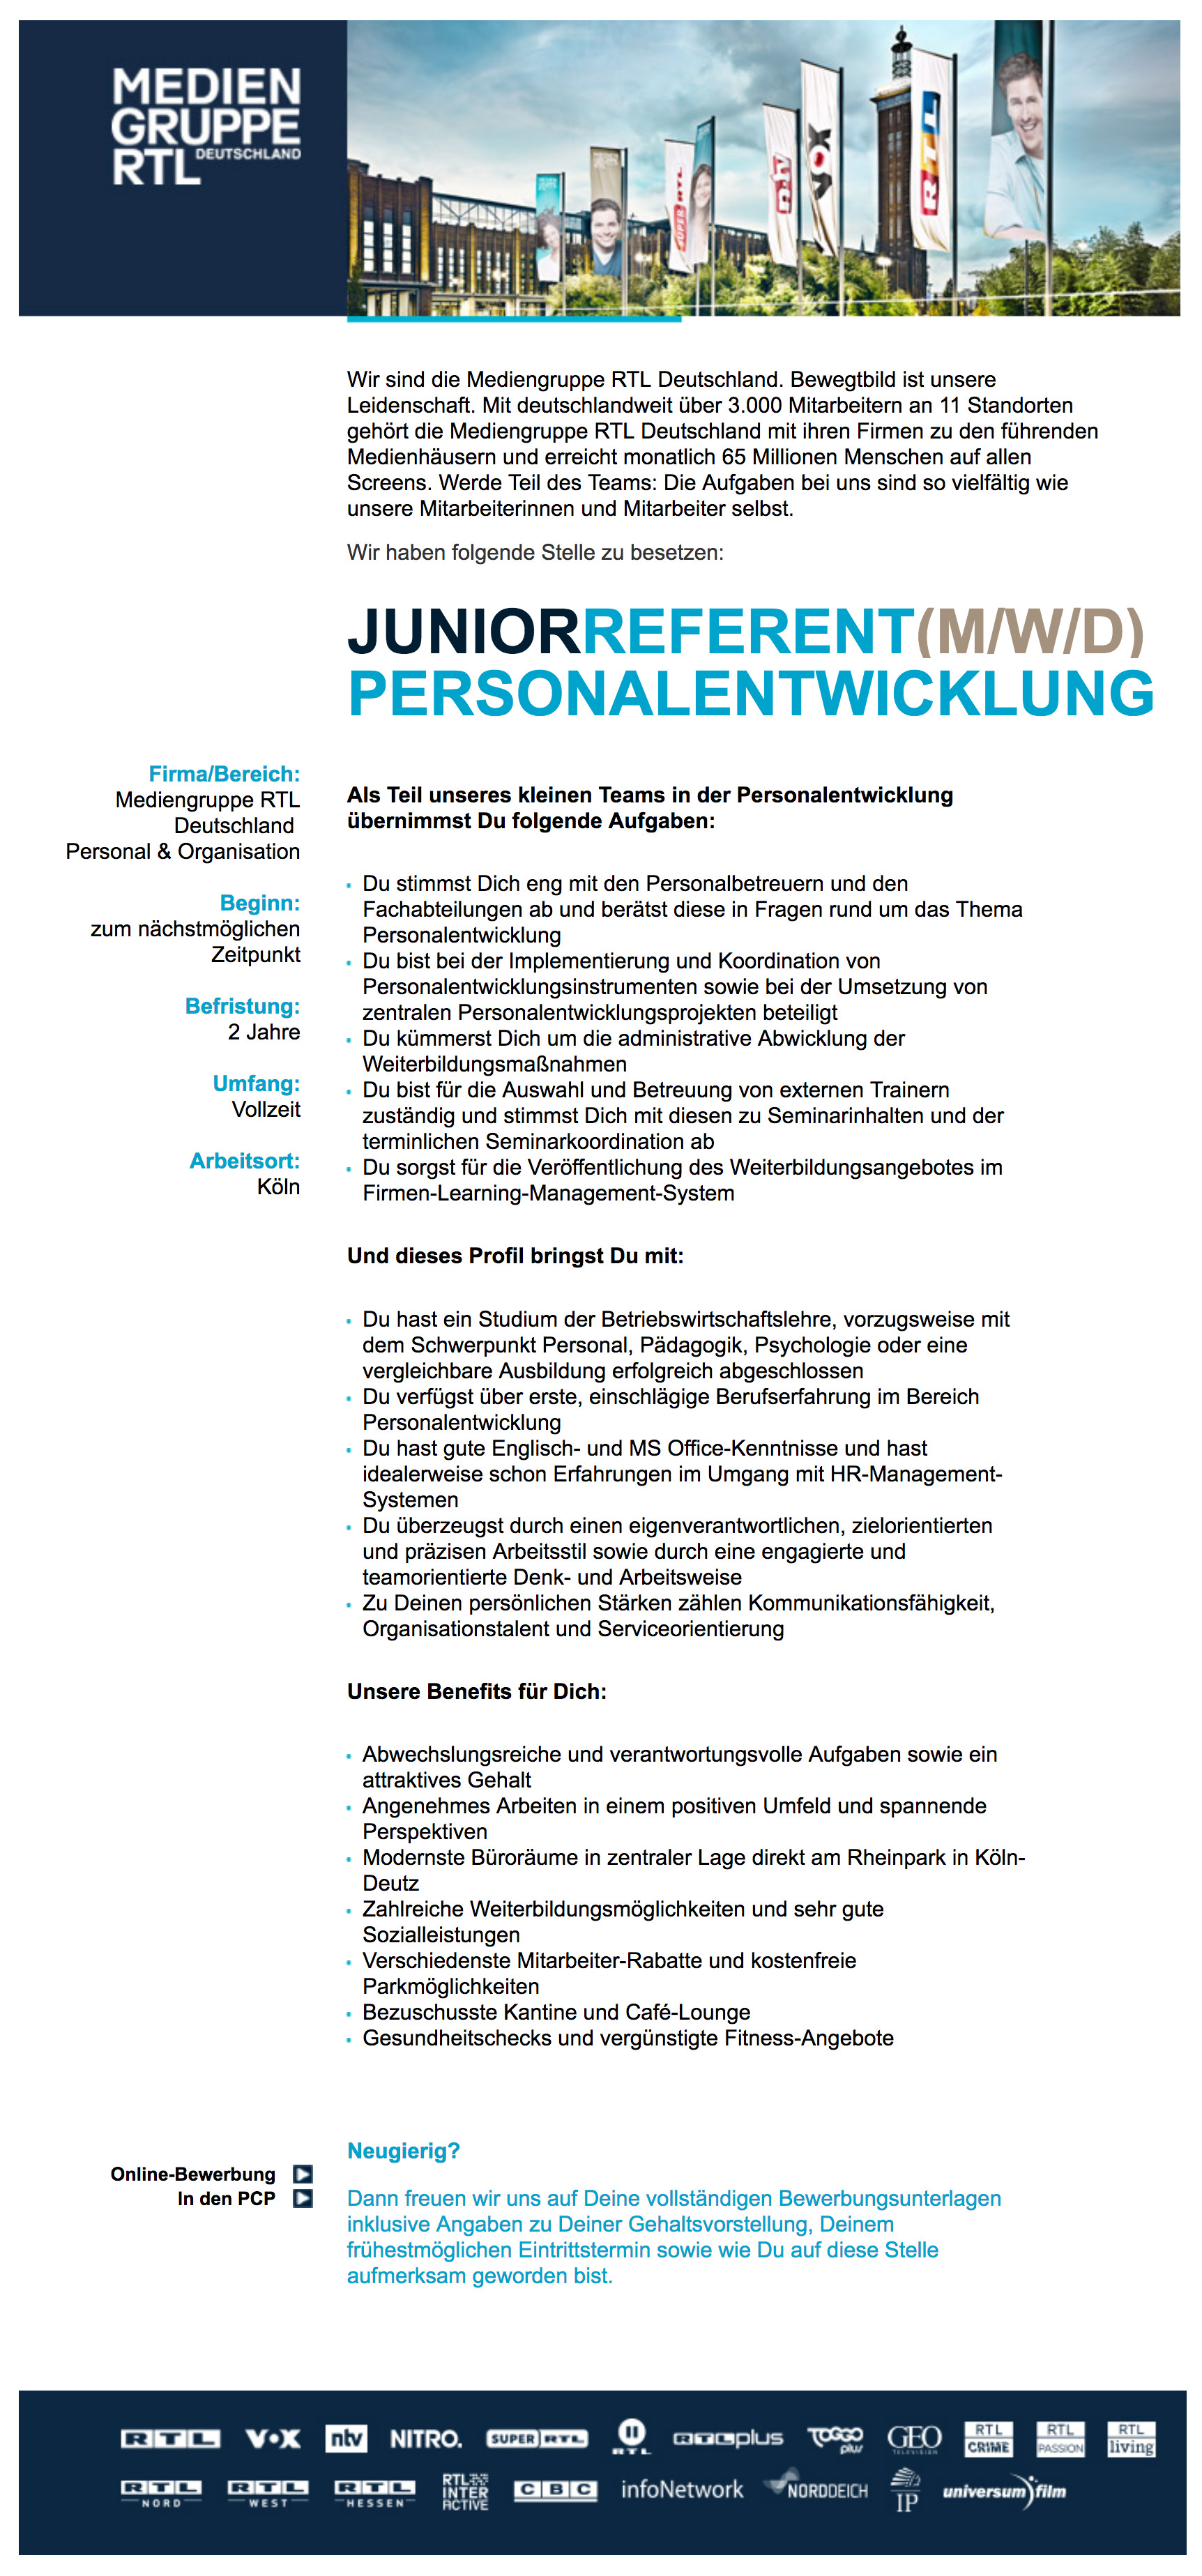 Junior Referent (m/w/d) Personalentwicklung